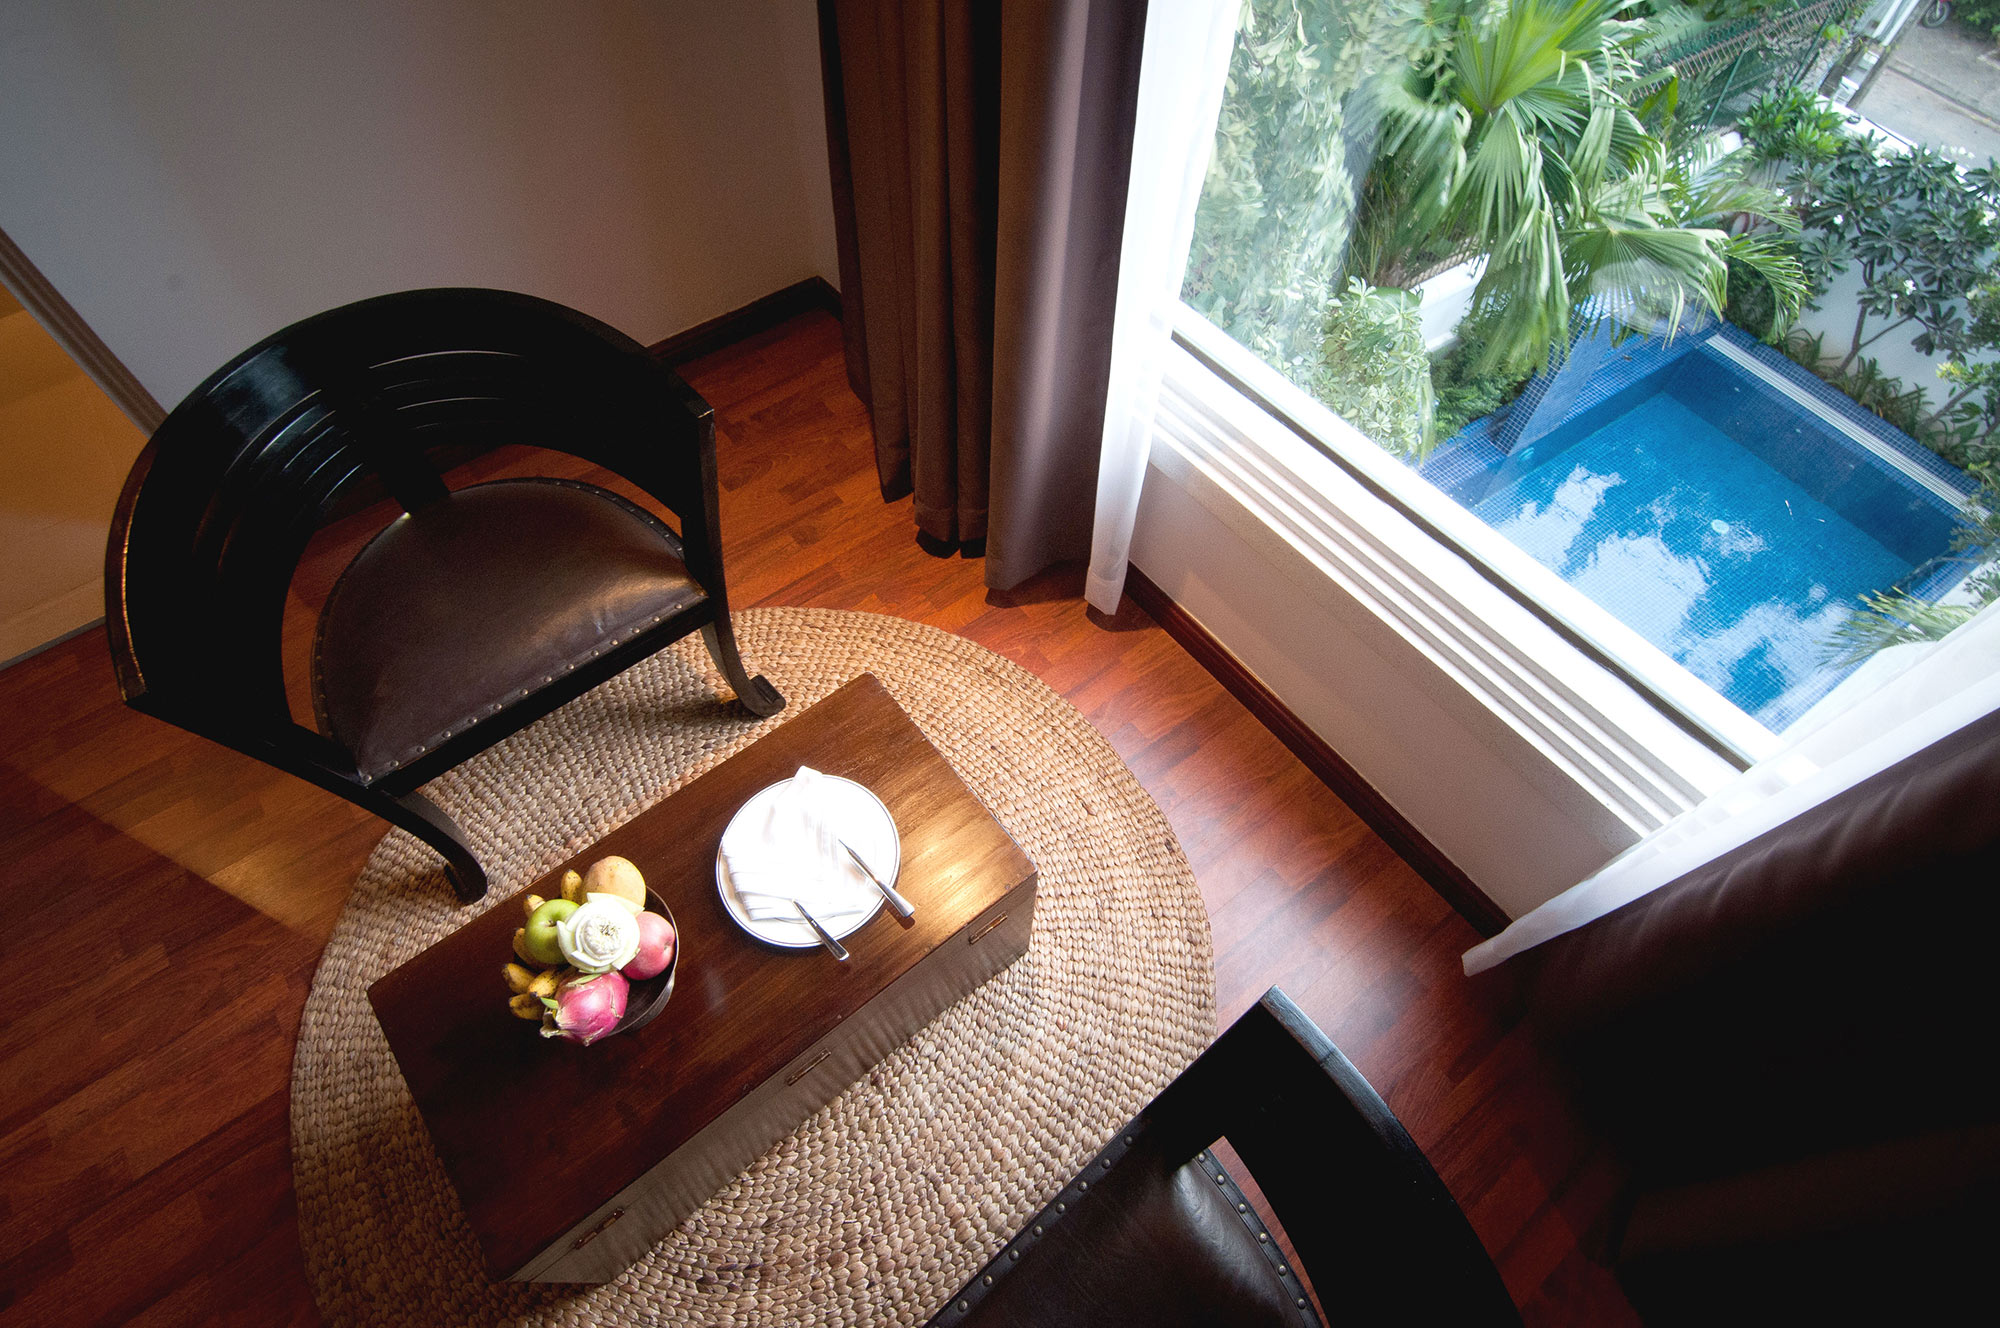 A chair and table by a window overlooking a pool at La Rose Suites, Phnom Penh's first 5-star boutique hotel, Cambodia